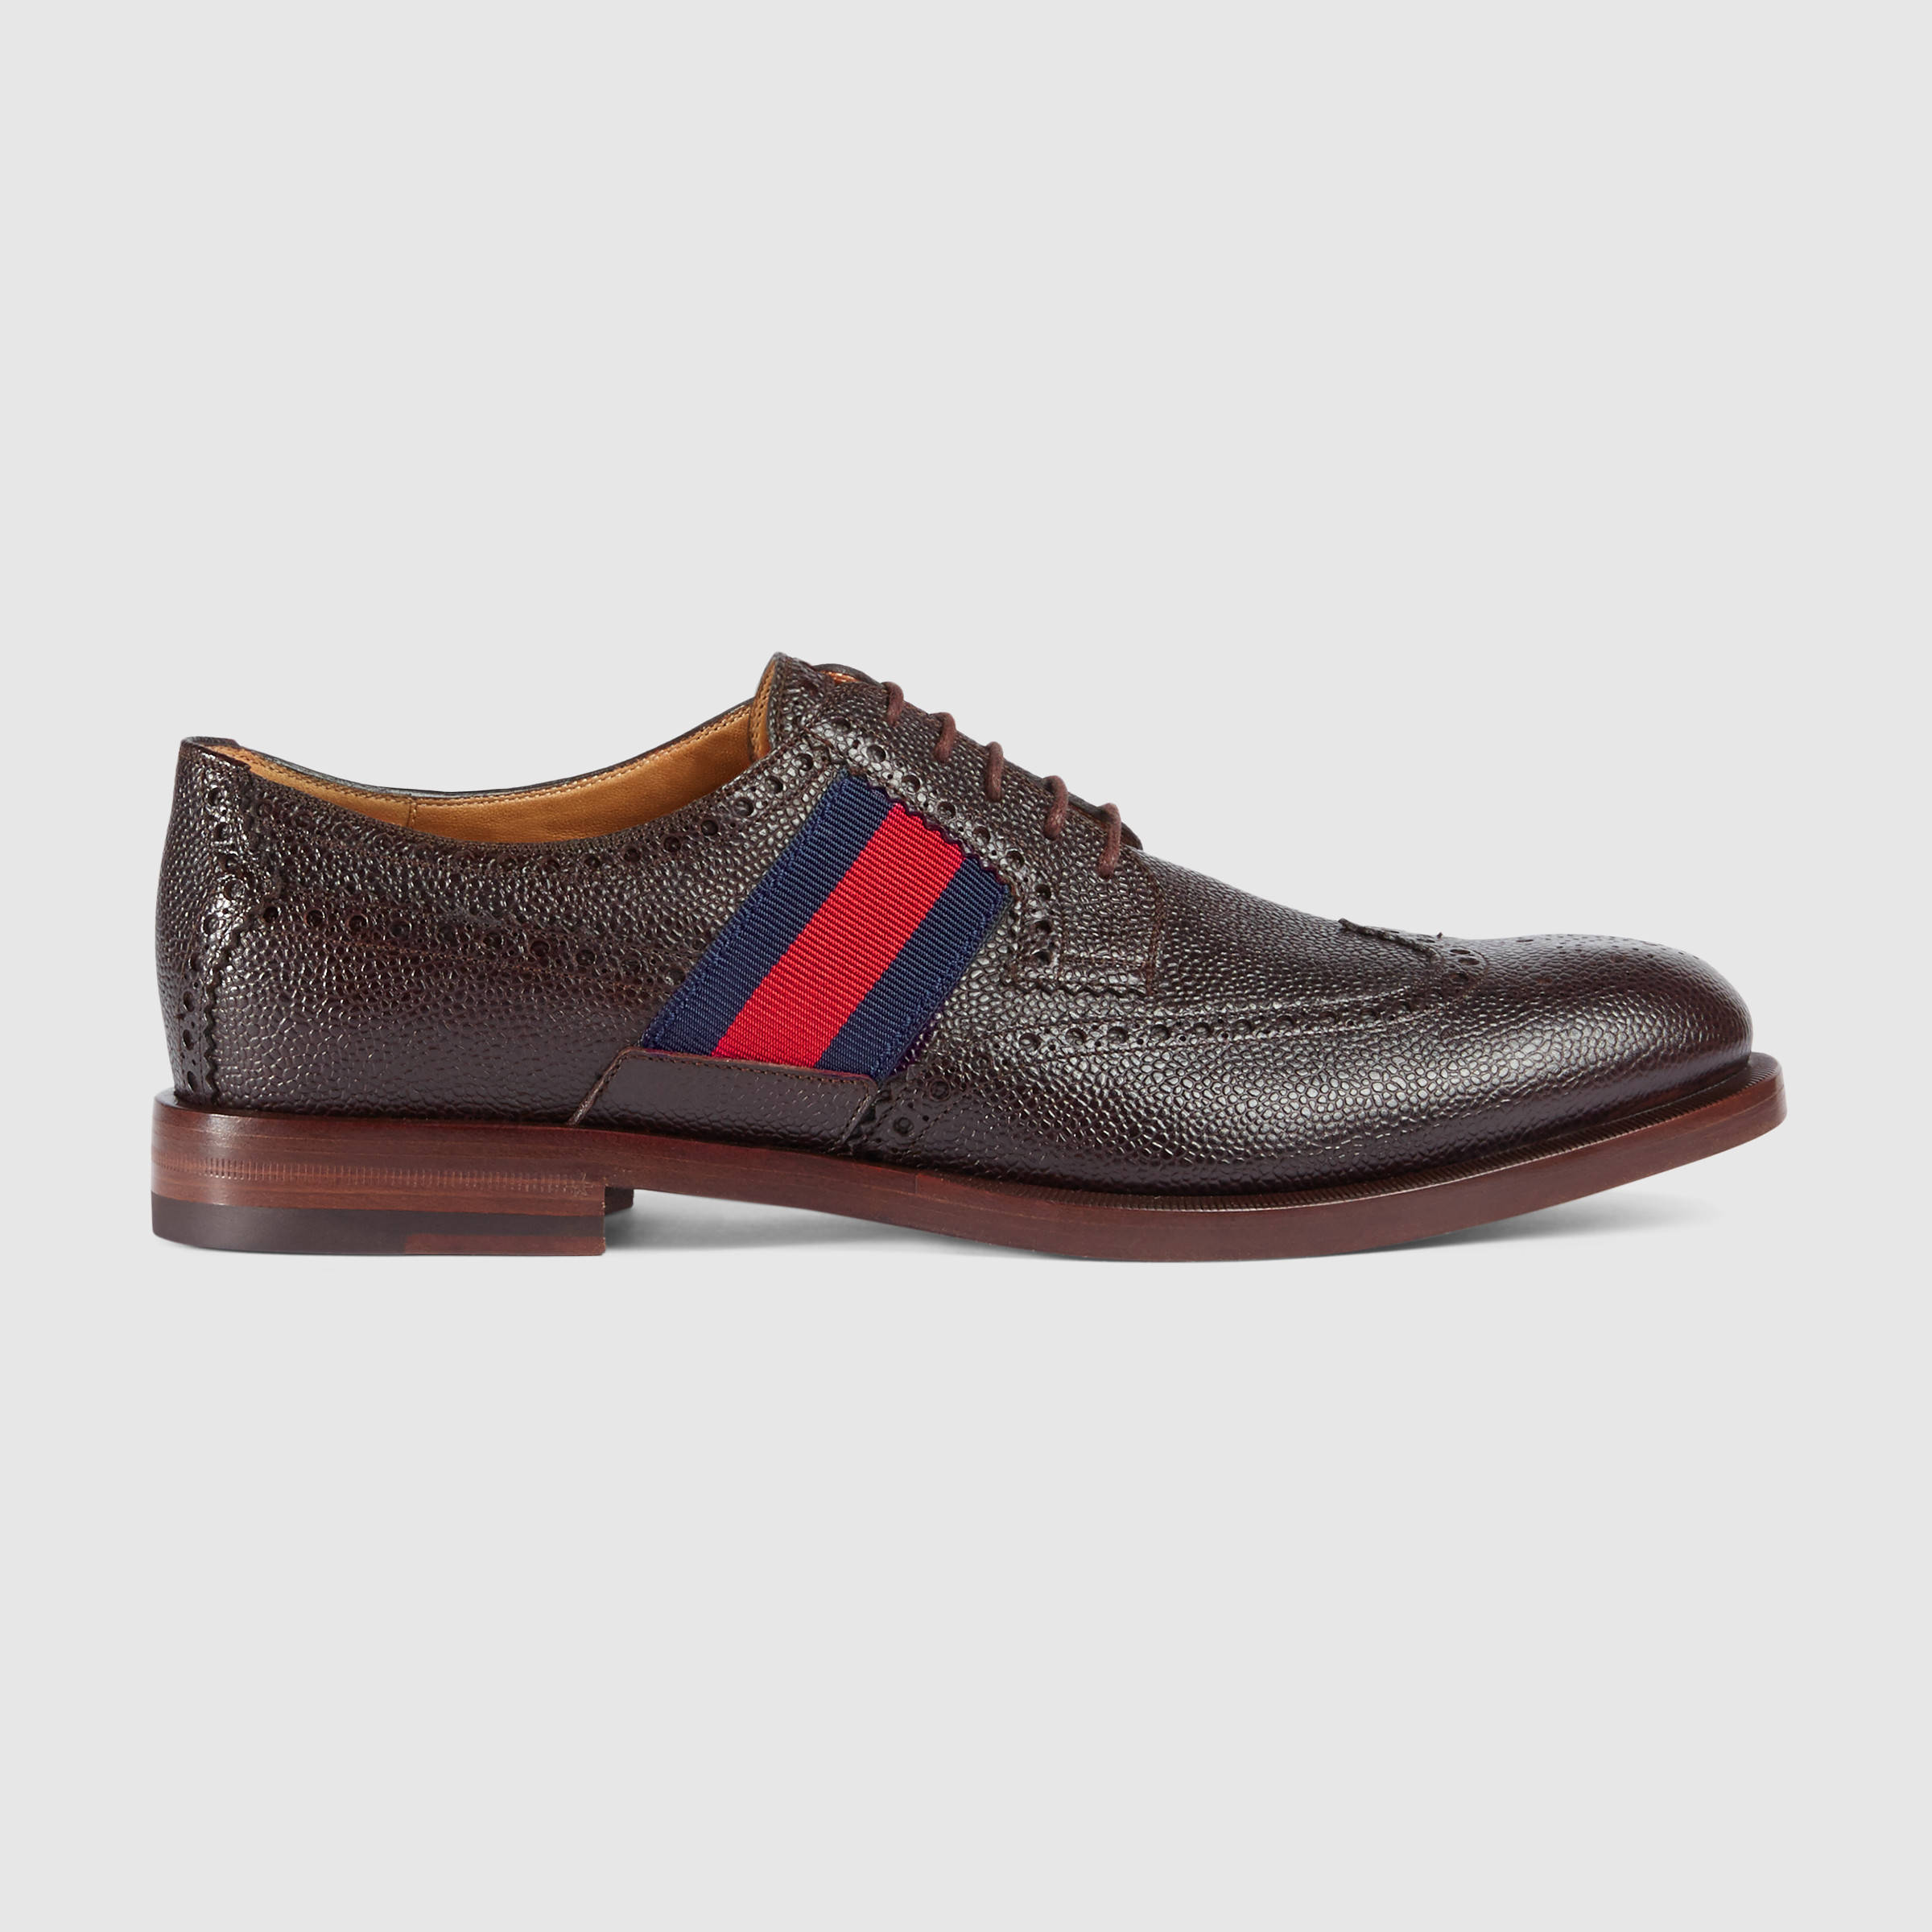 Gucci's lace-up dress shoe in textured leather with perforated details and striped accents